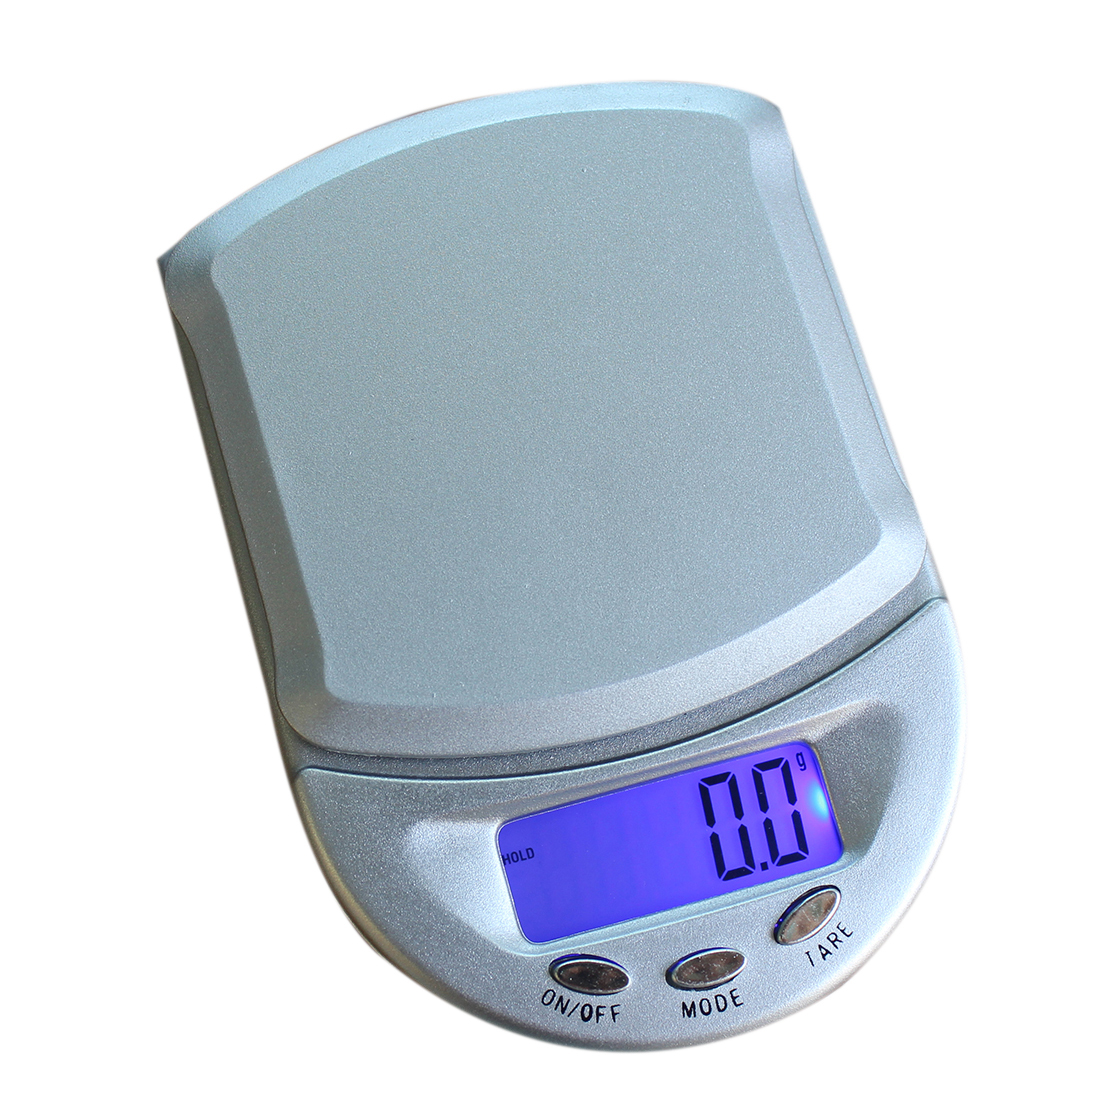 Electronic Scale 500g/ 0.1g LCD Digital Jewelry Scales Precision Portable Pocket Weight Balance Kitchen Gram Scale newacalox 50g 0 001g portable mini jewelry scales lab weight high precision scale medicinal use lcd digital electronic balance